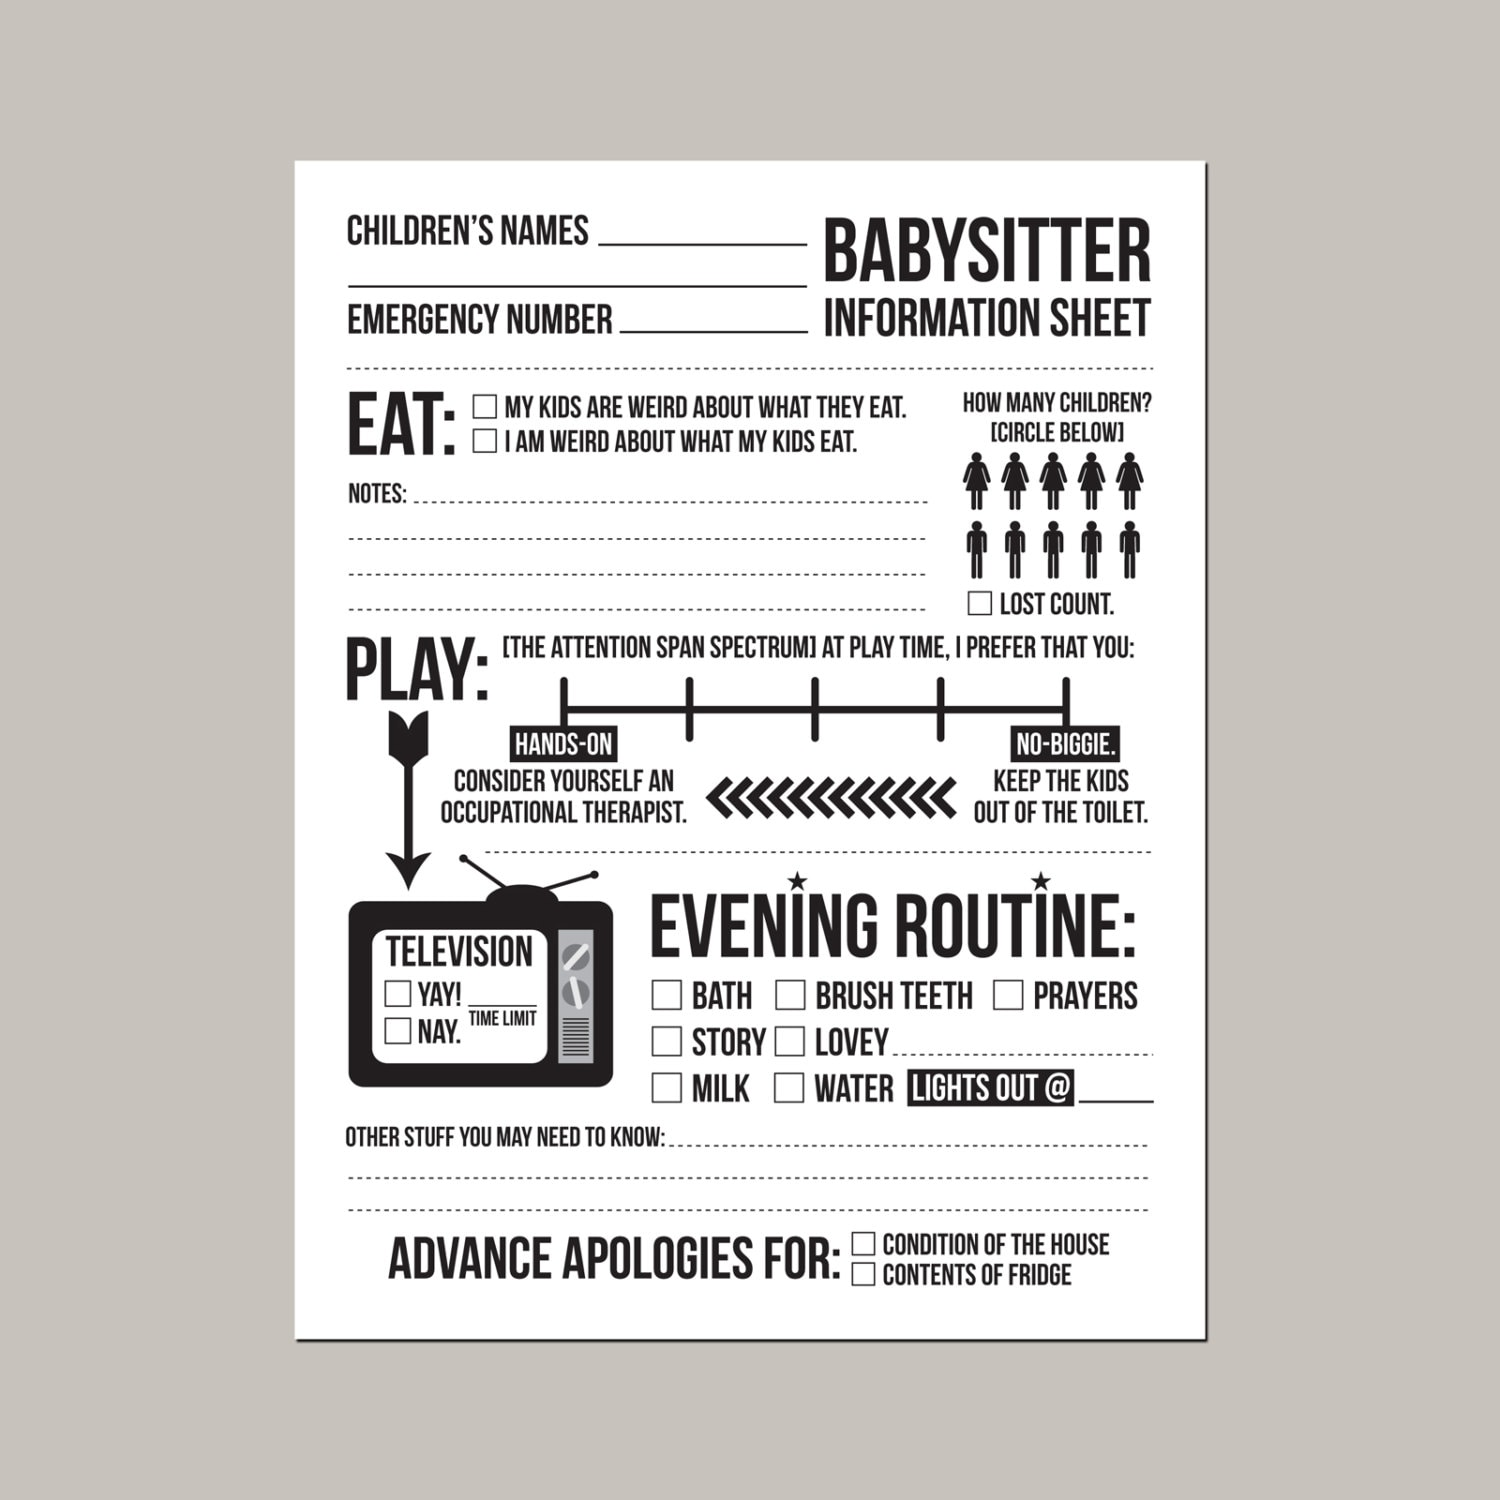 instant downloadable babysitter information sheet for